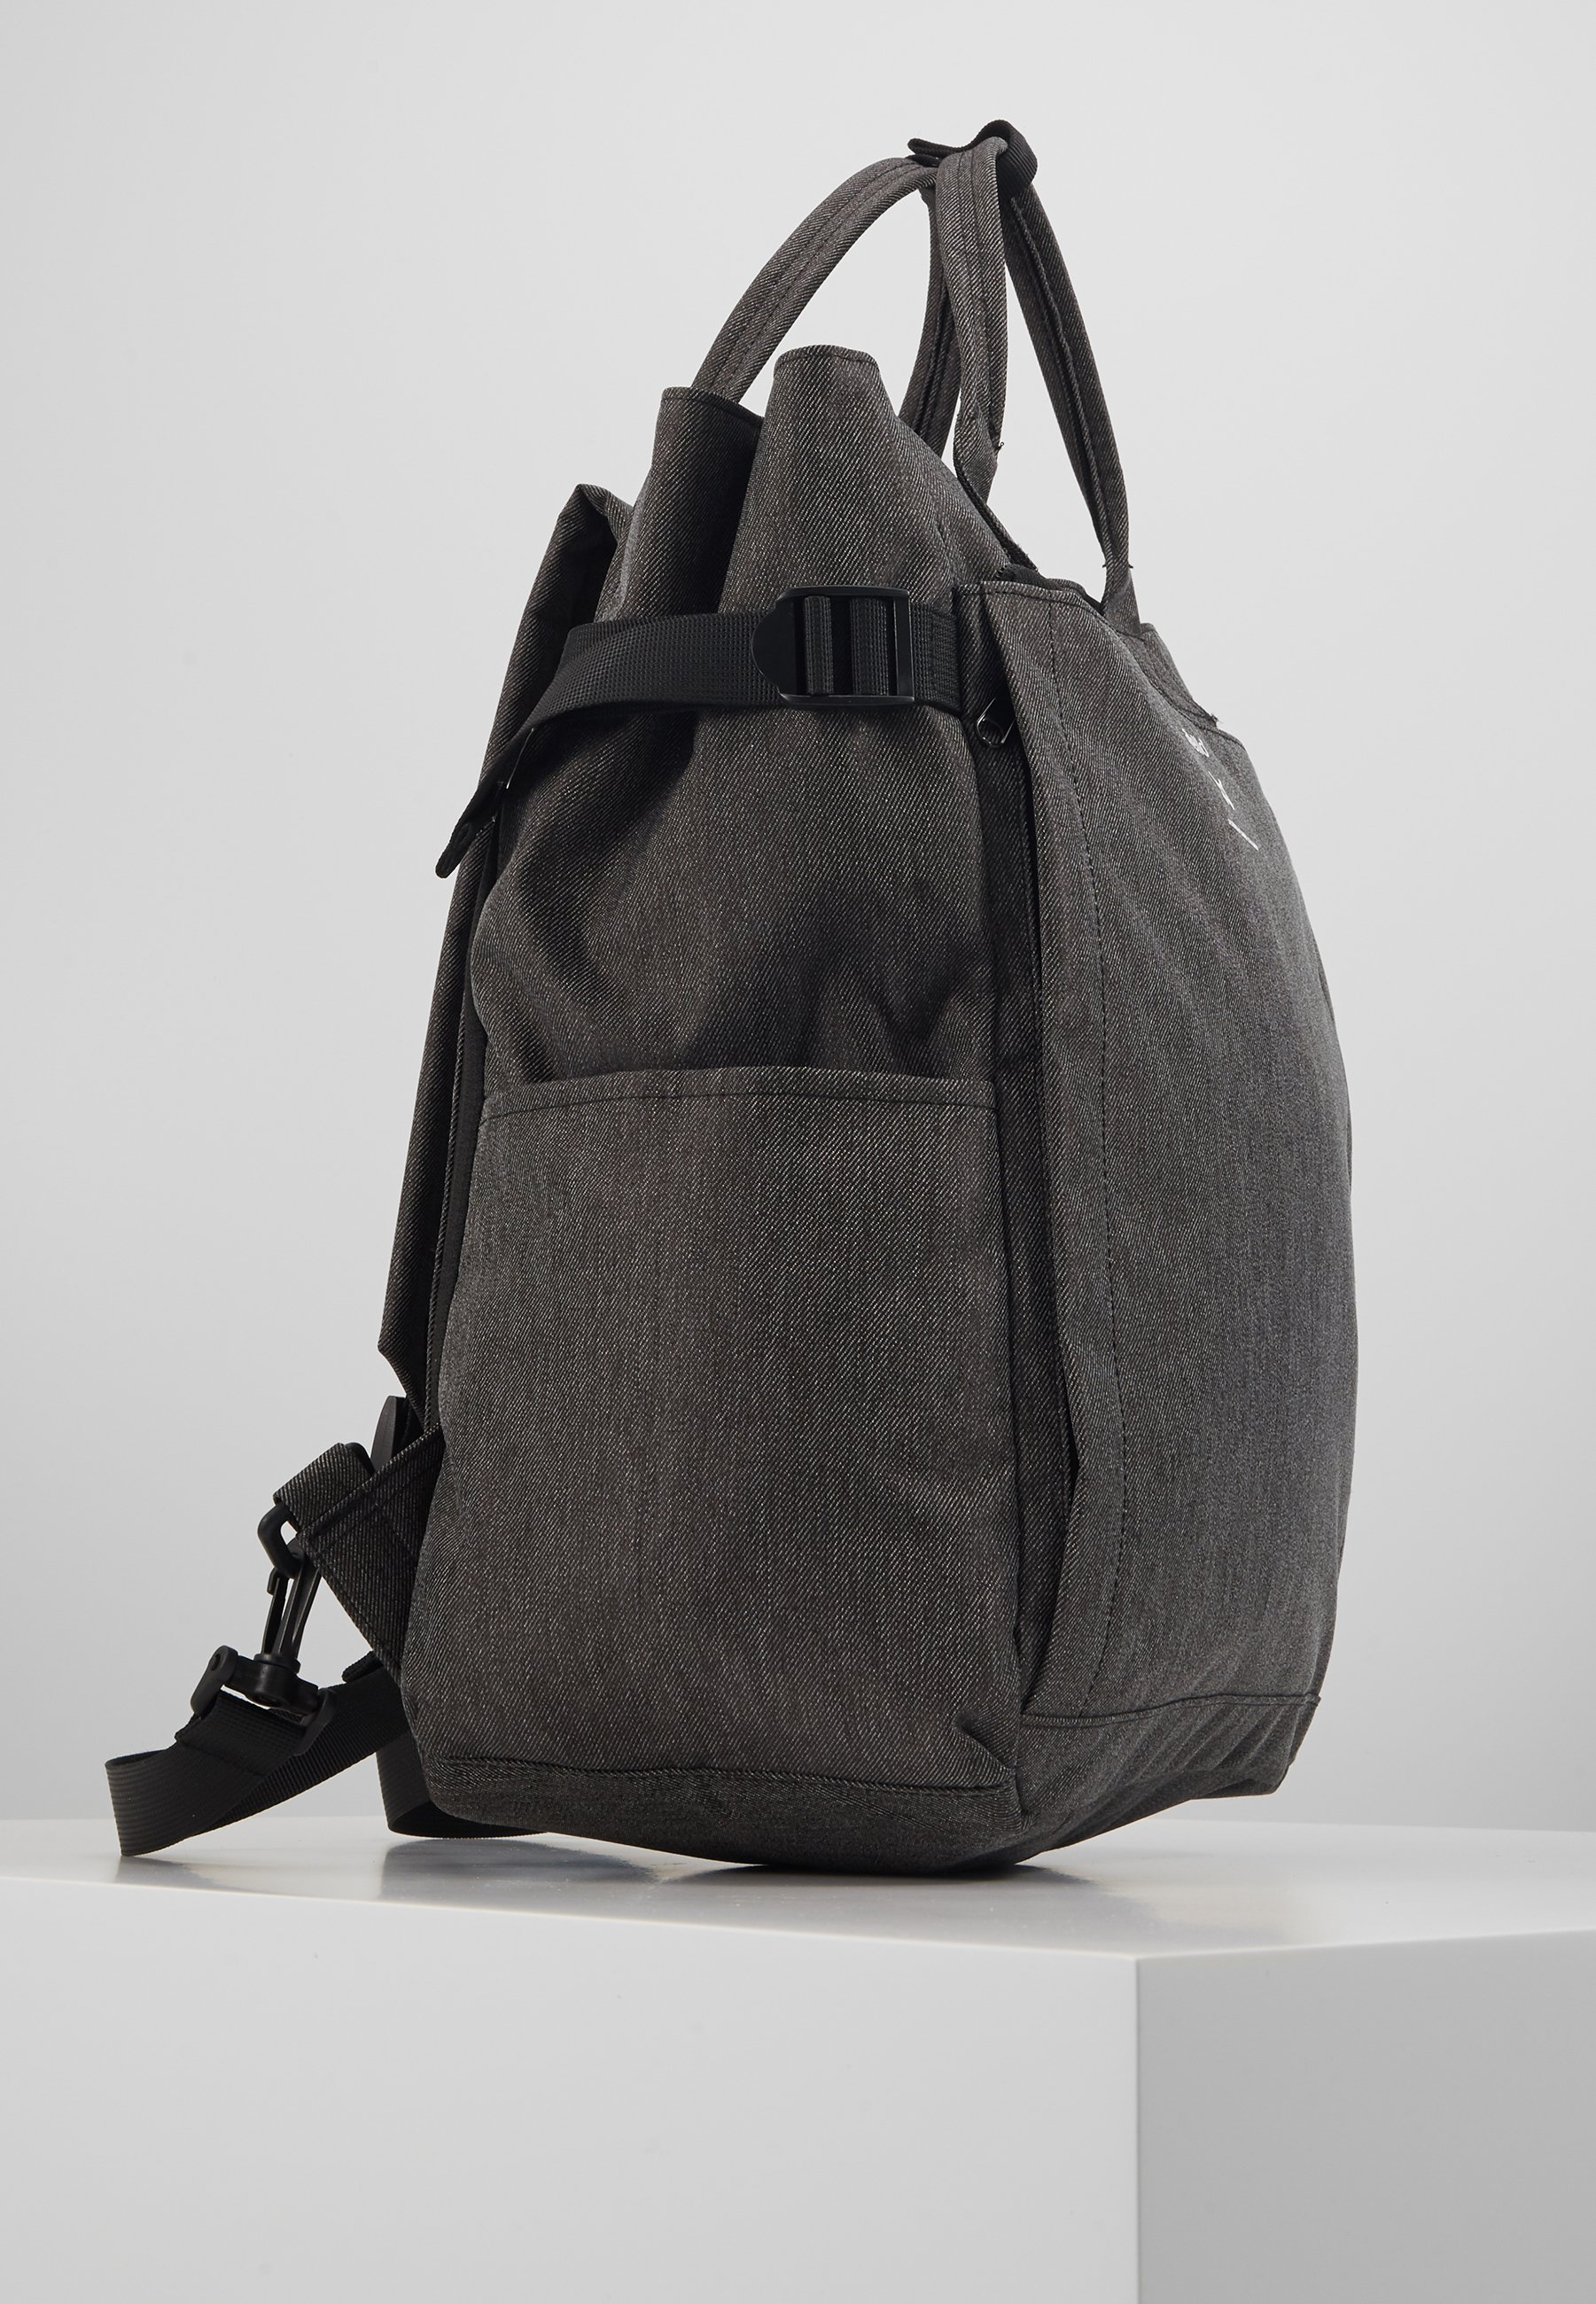 Anello Open Tote Backpack - Sac À Dos Black